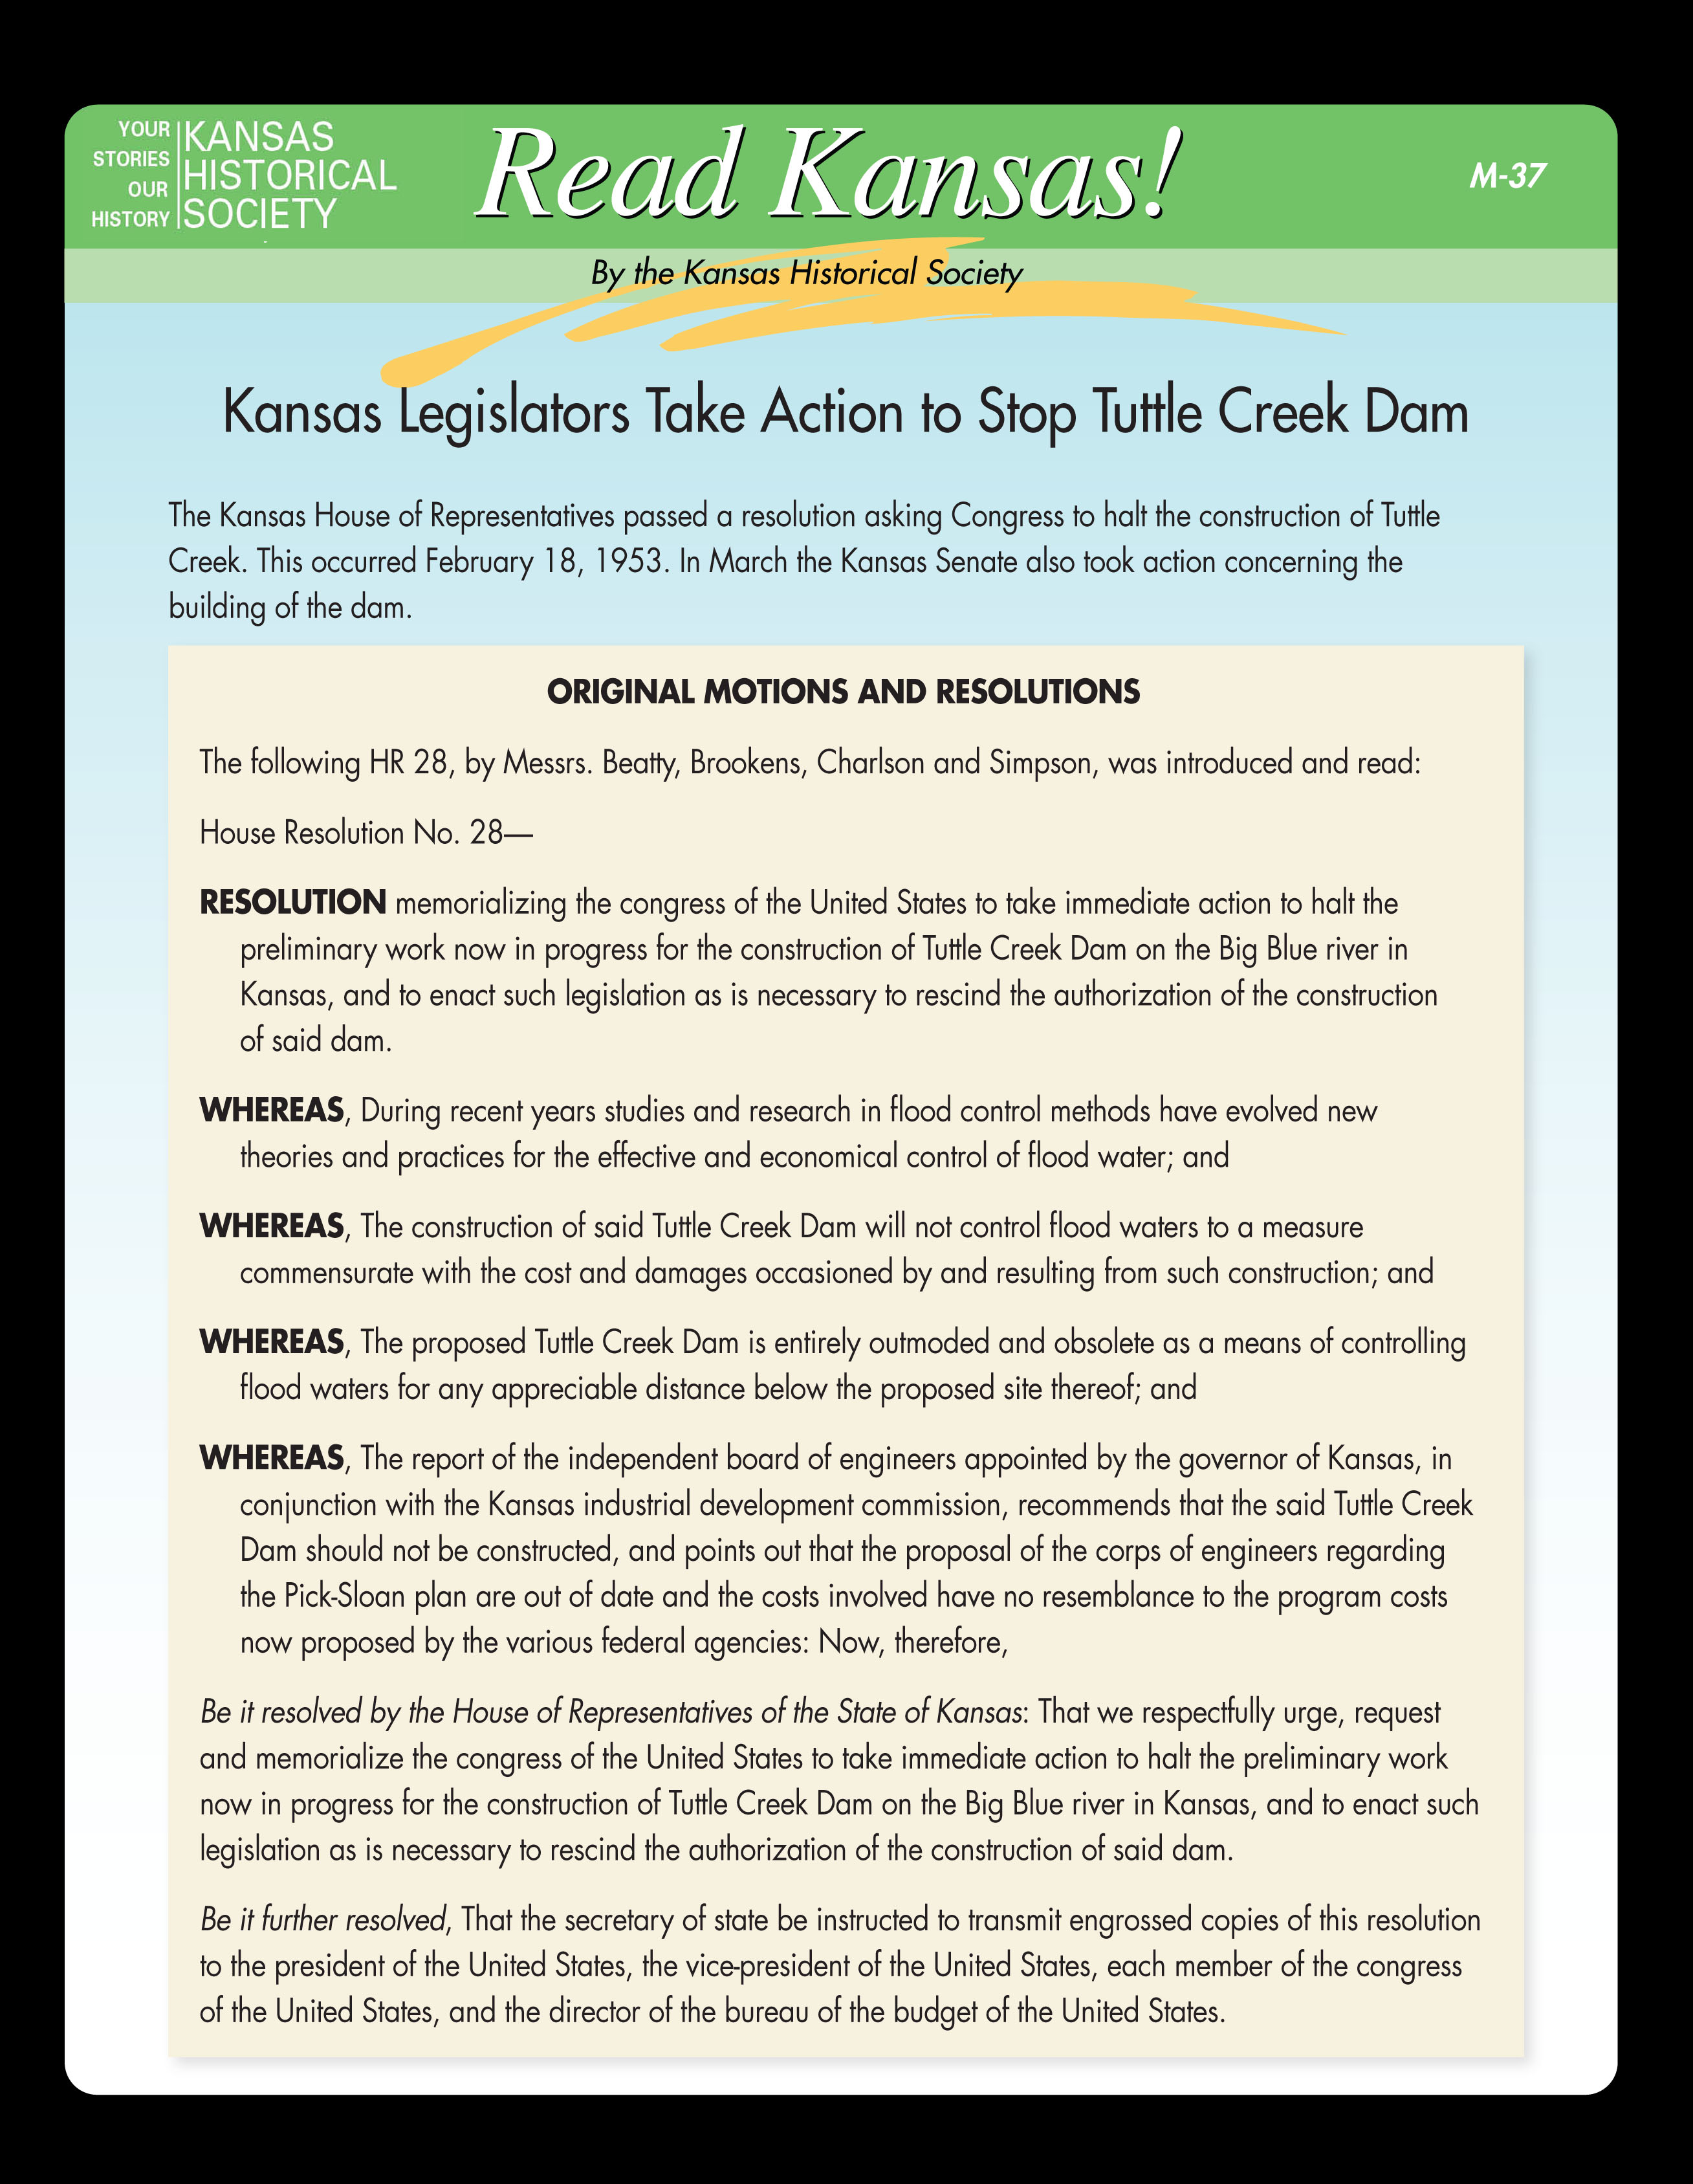 Kansas Legislators Take Action to Stop Tuttle Creek Dam